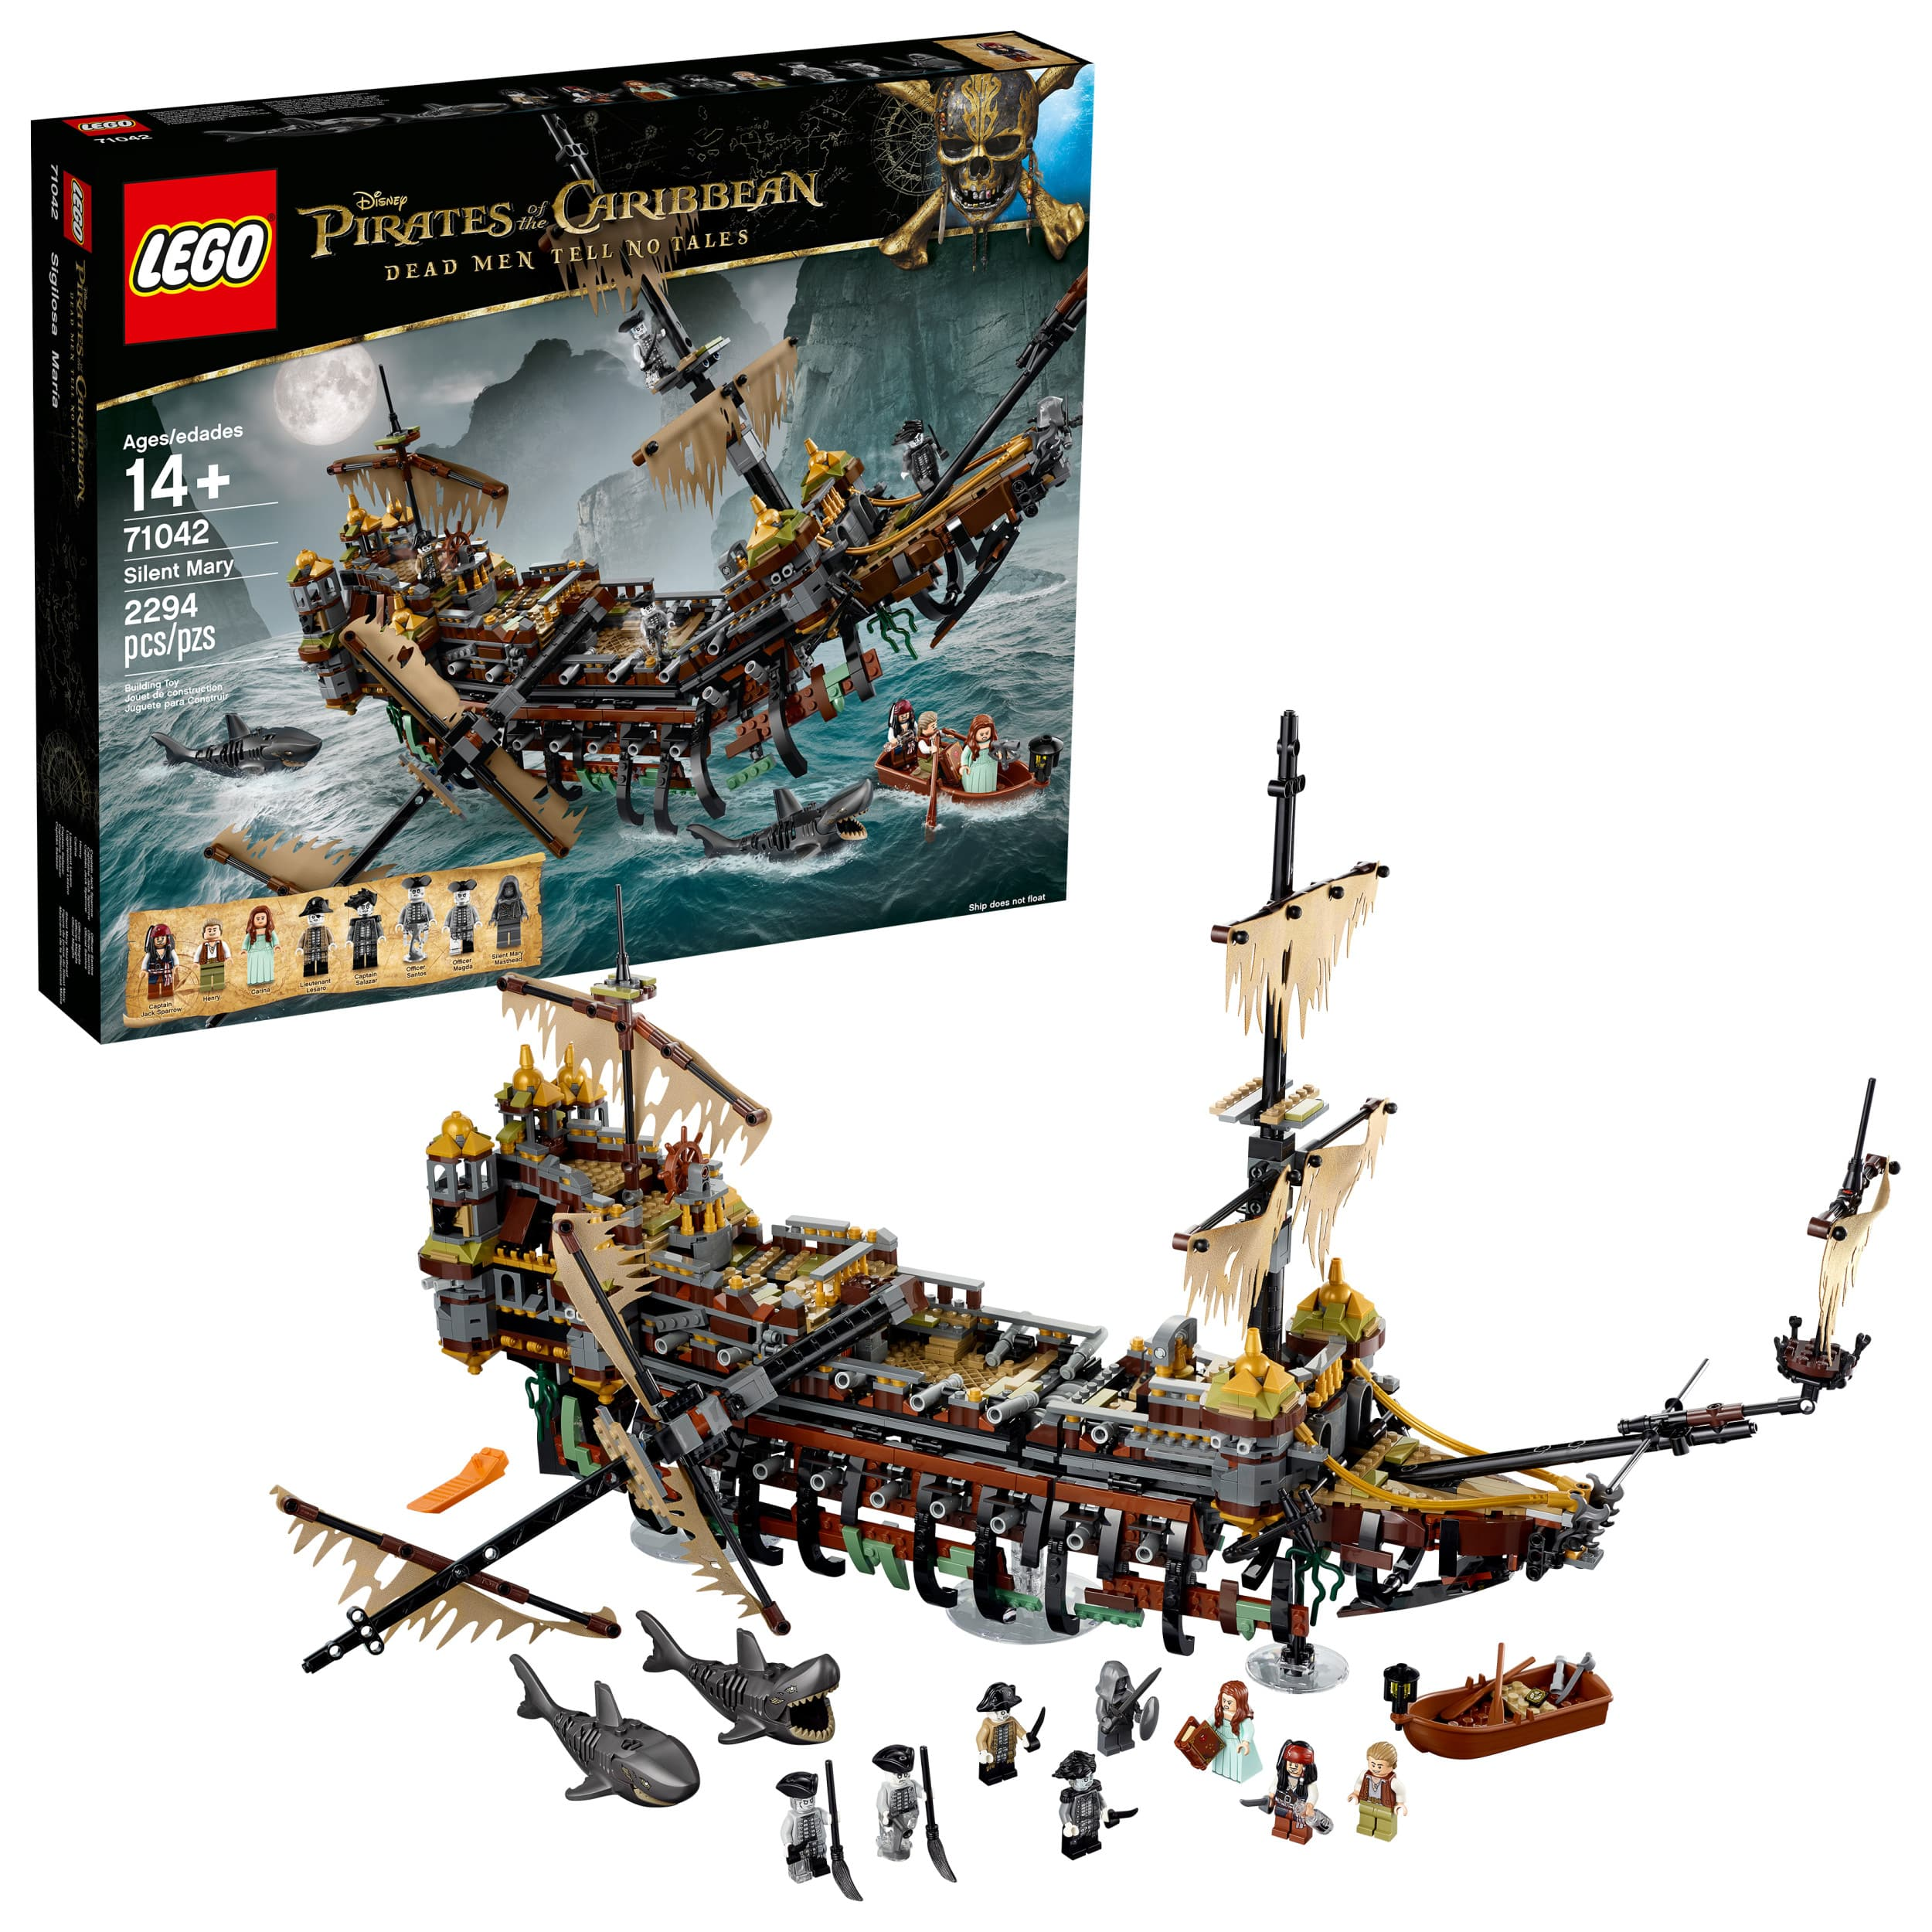 LEGO 71042 Pirates of the Caribbean Silent Mary (2294 Pieces) 30% off! $139.99